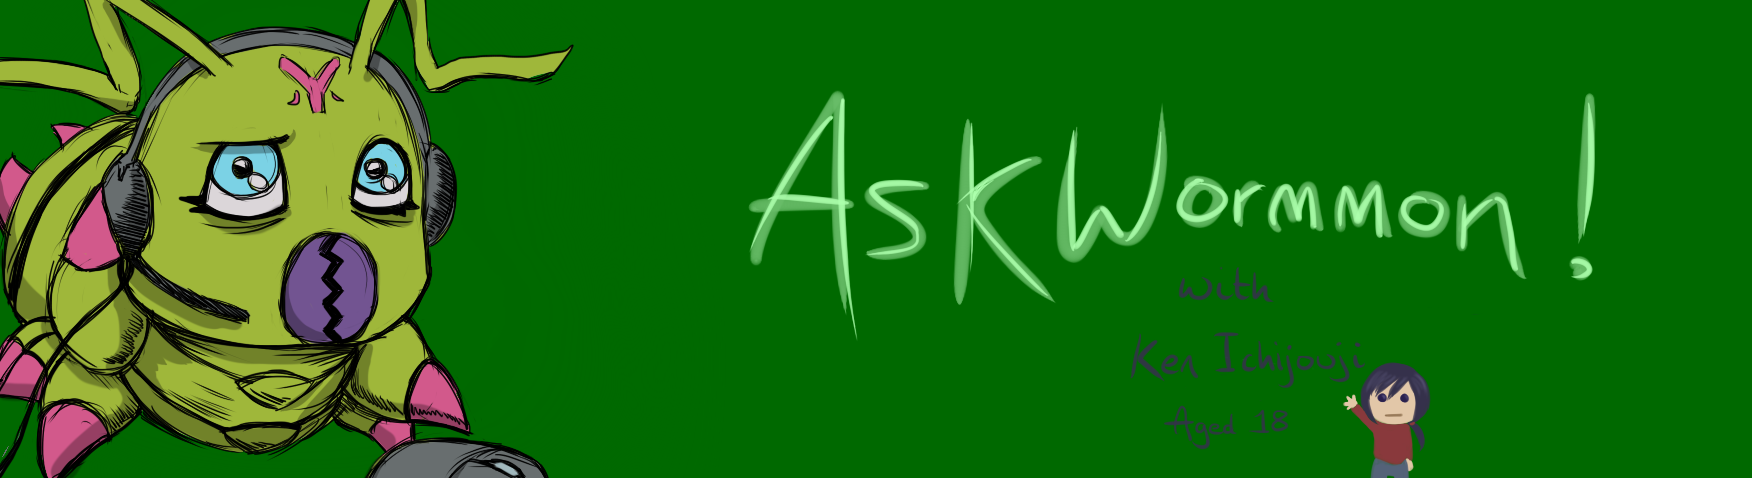 ASK WORMMON